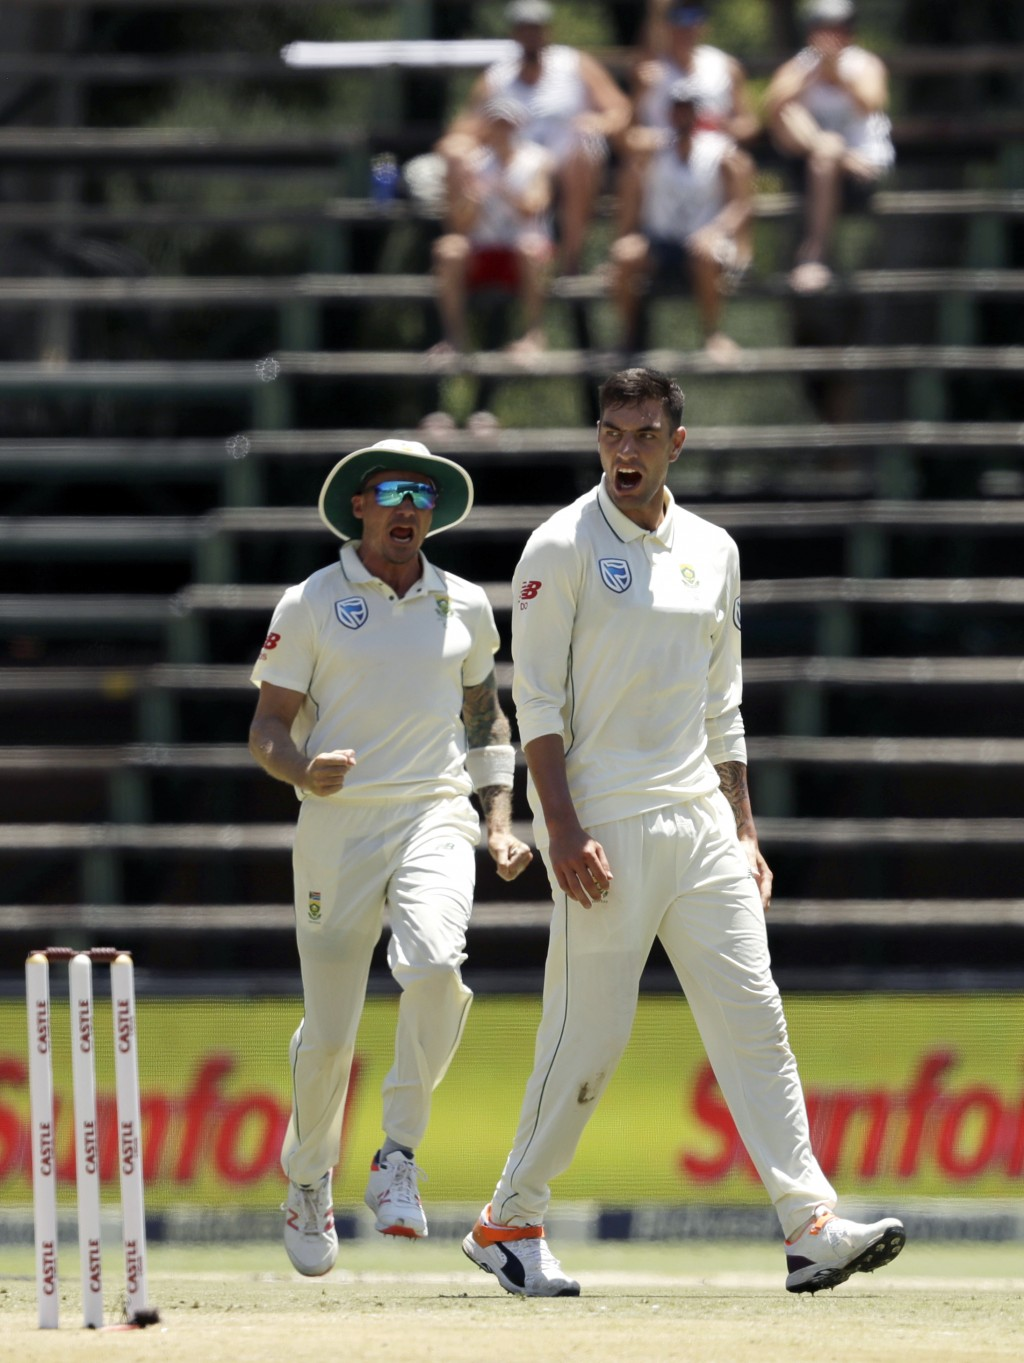 South Africa's bowler Duanne Olivier, right, reacts after dismissing Pakistan's batsman Asad Shafiq for a duck on day two of the third cricket test ma